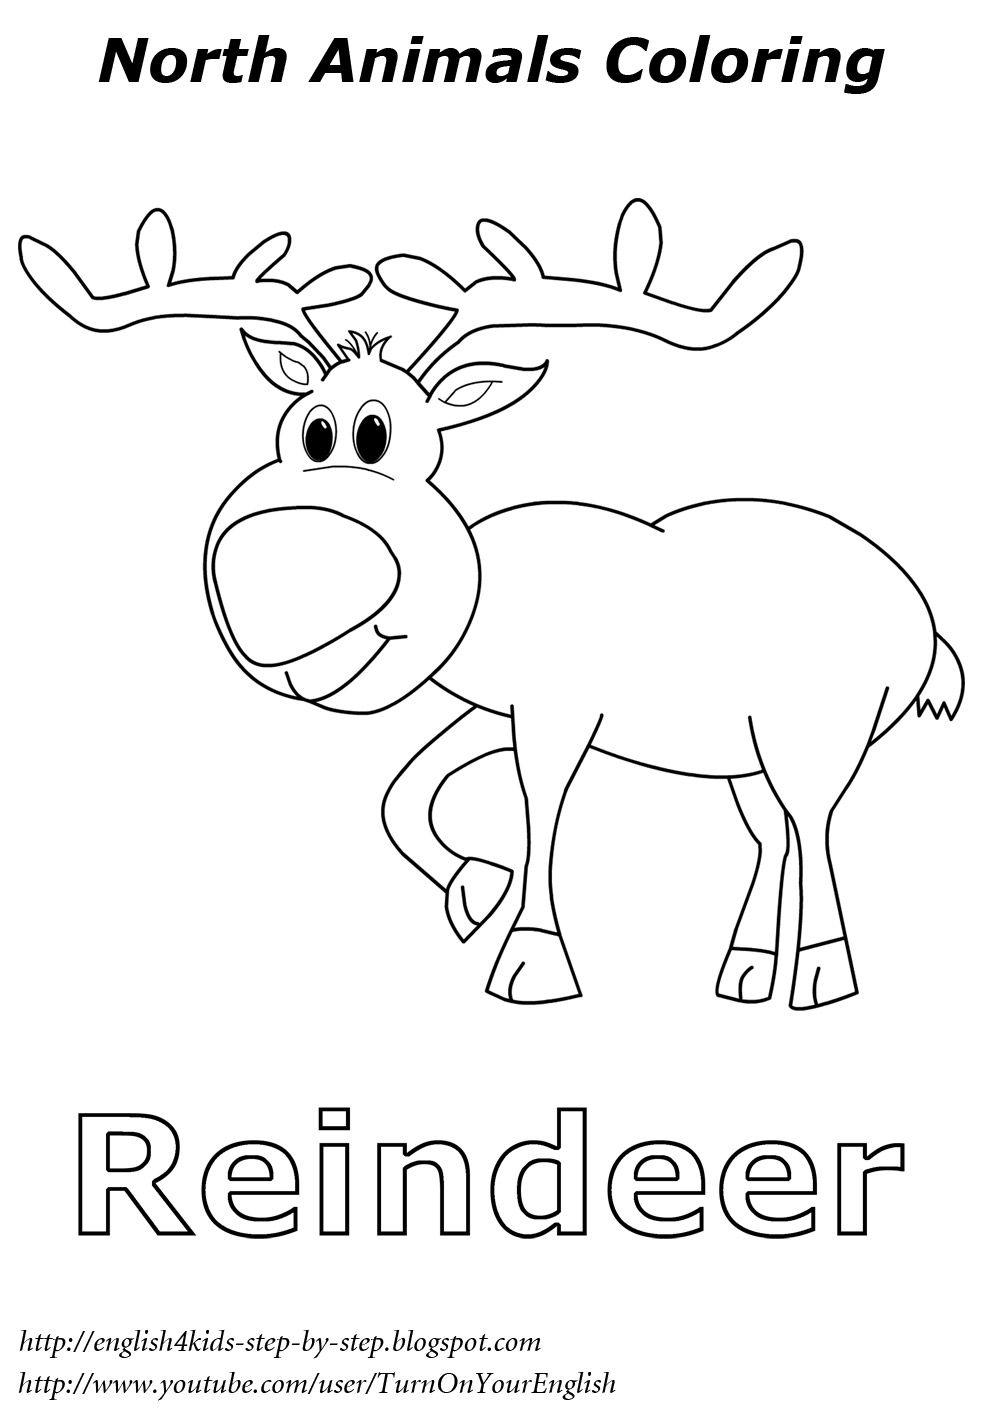 Christmas Coloring Youtube With Reindeer North Animal Esl English